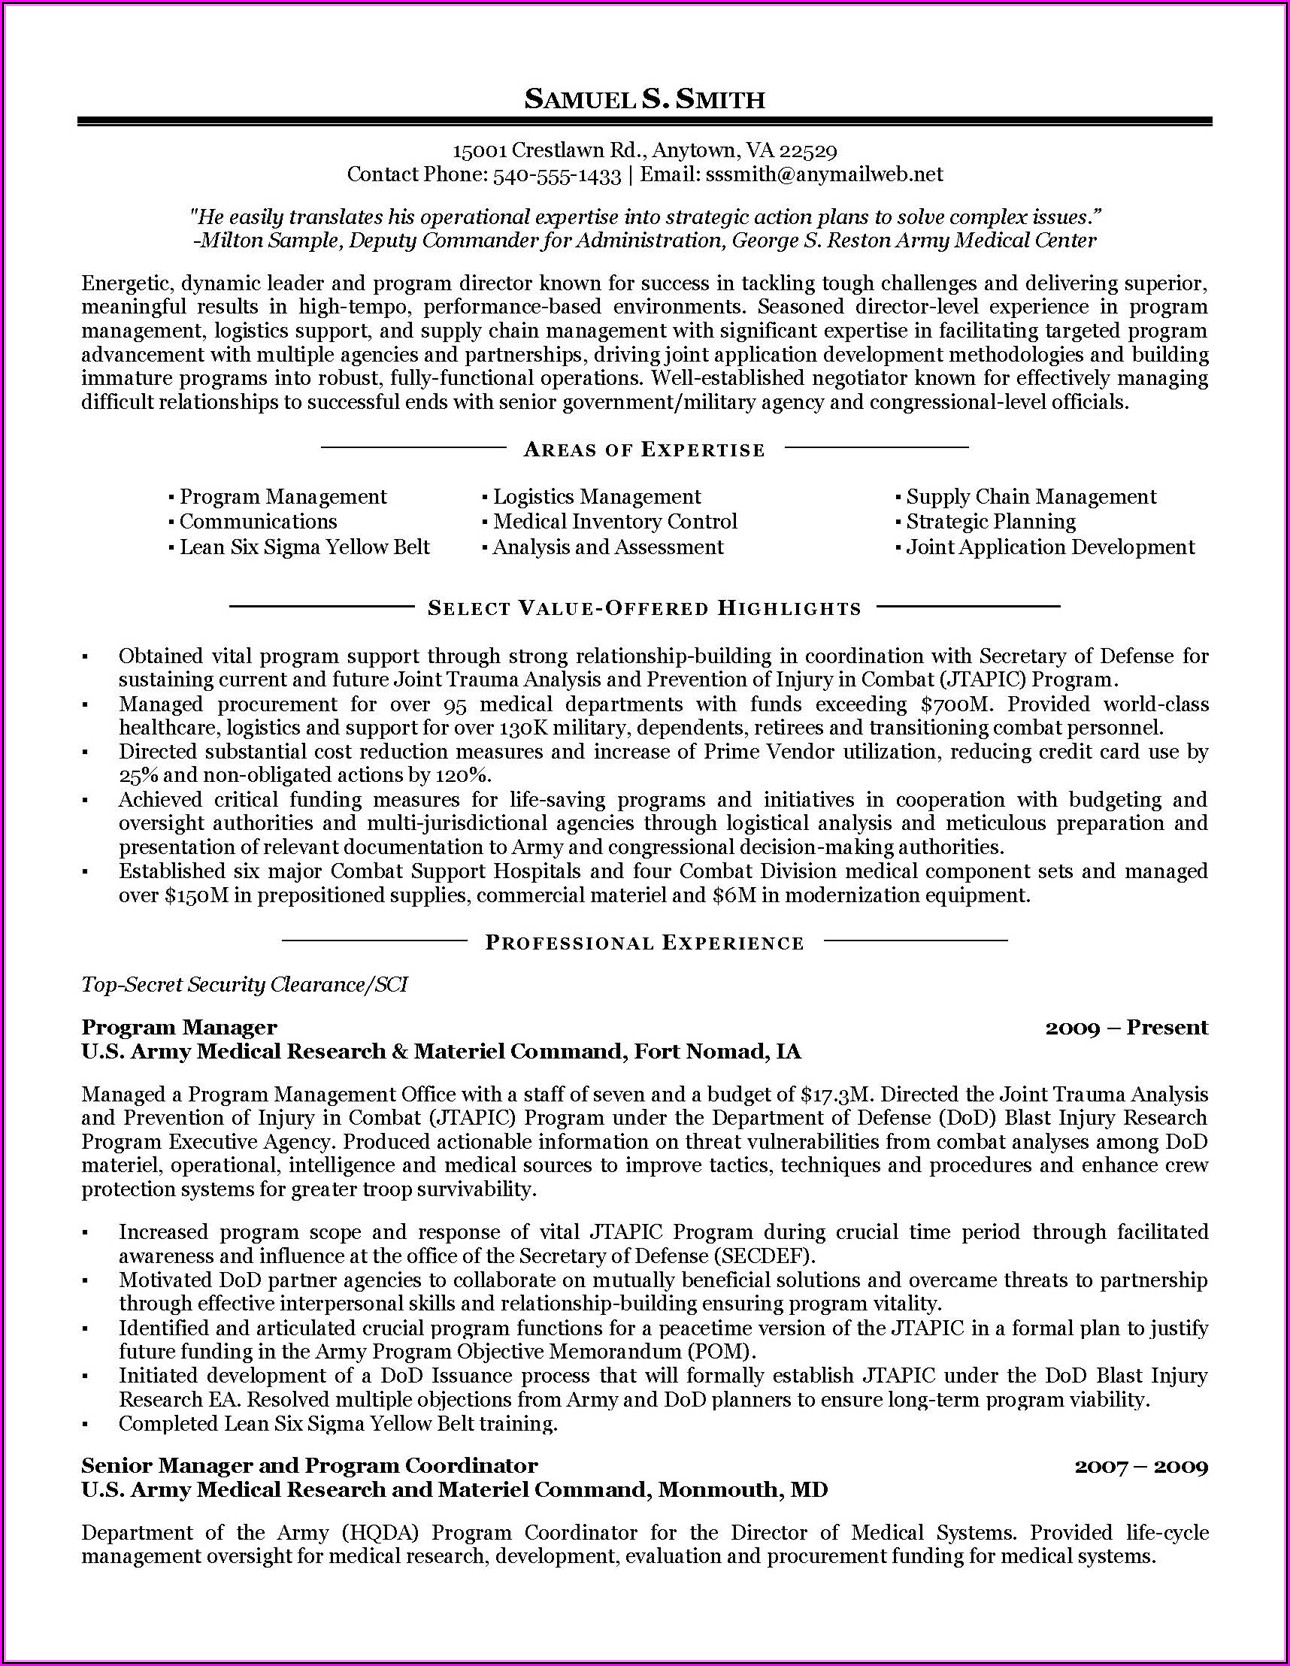 Military Spouse Resume Help